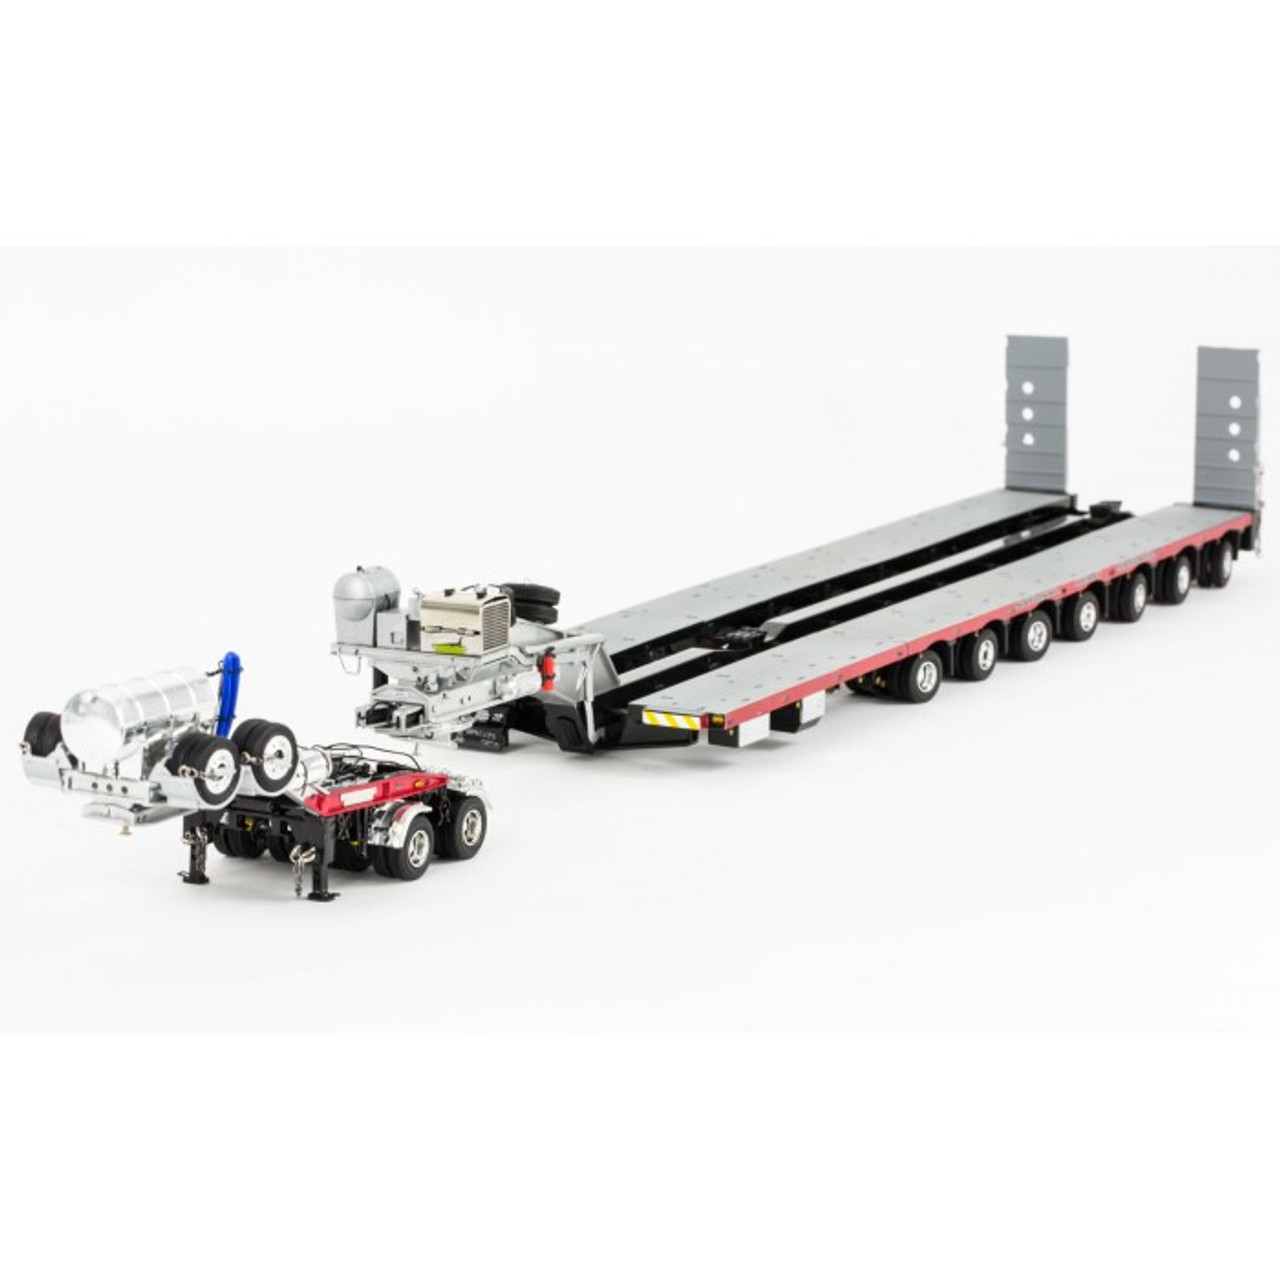 1:50 scale diecast model of Drake 2x8 Dolly and 7x8 Steerable Low Loader Trailer in NHH Livery